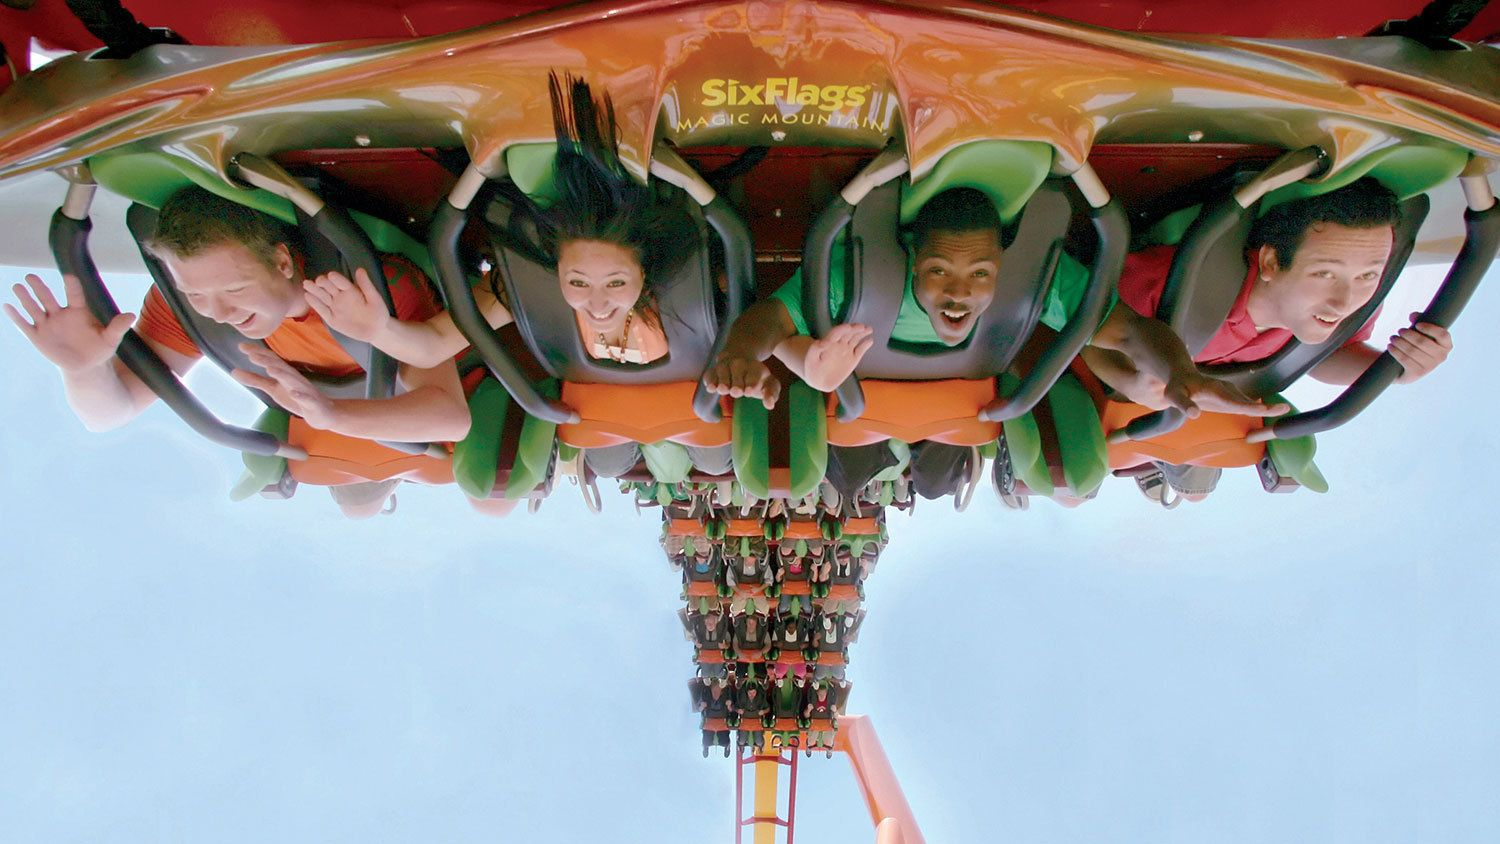 Six Flags roller coaster ride in Los Angeles.